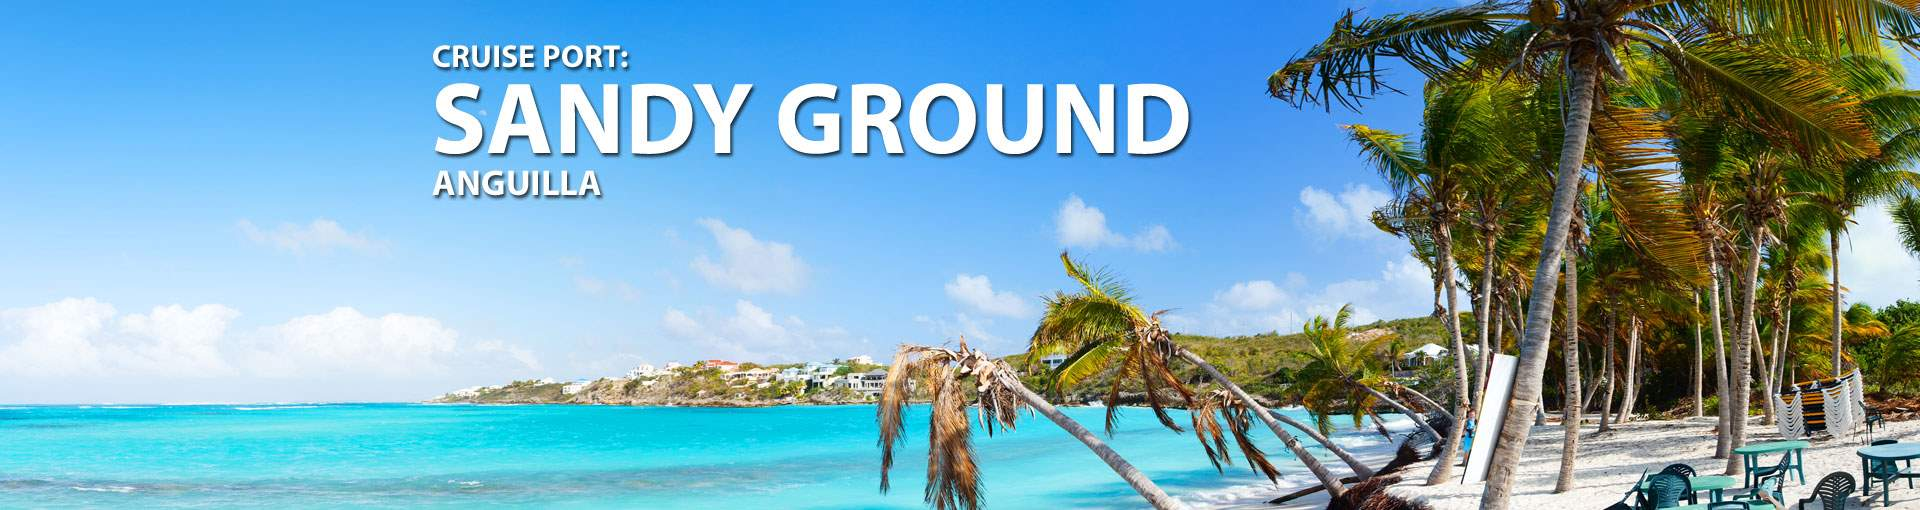 Cruises to Sandy Ground, Anguilla